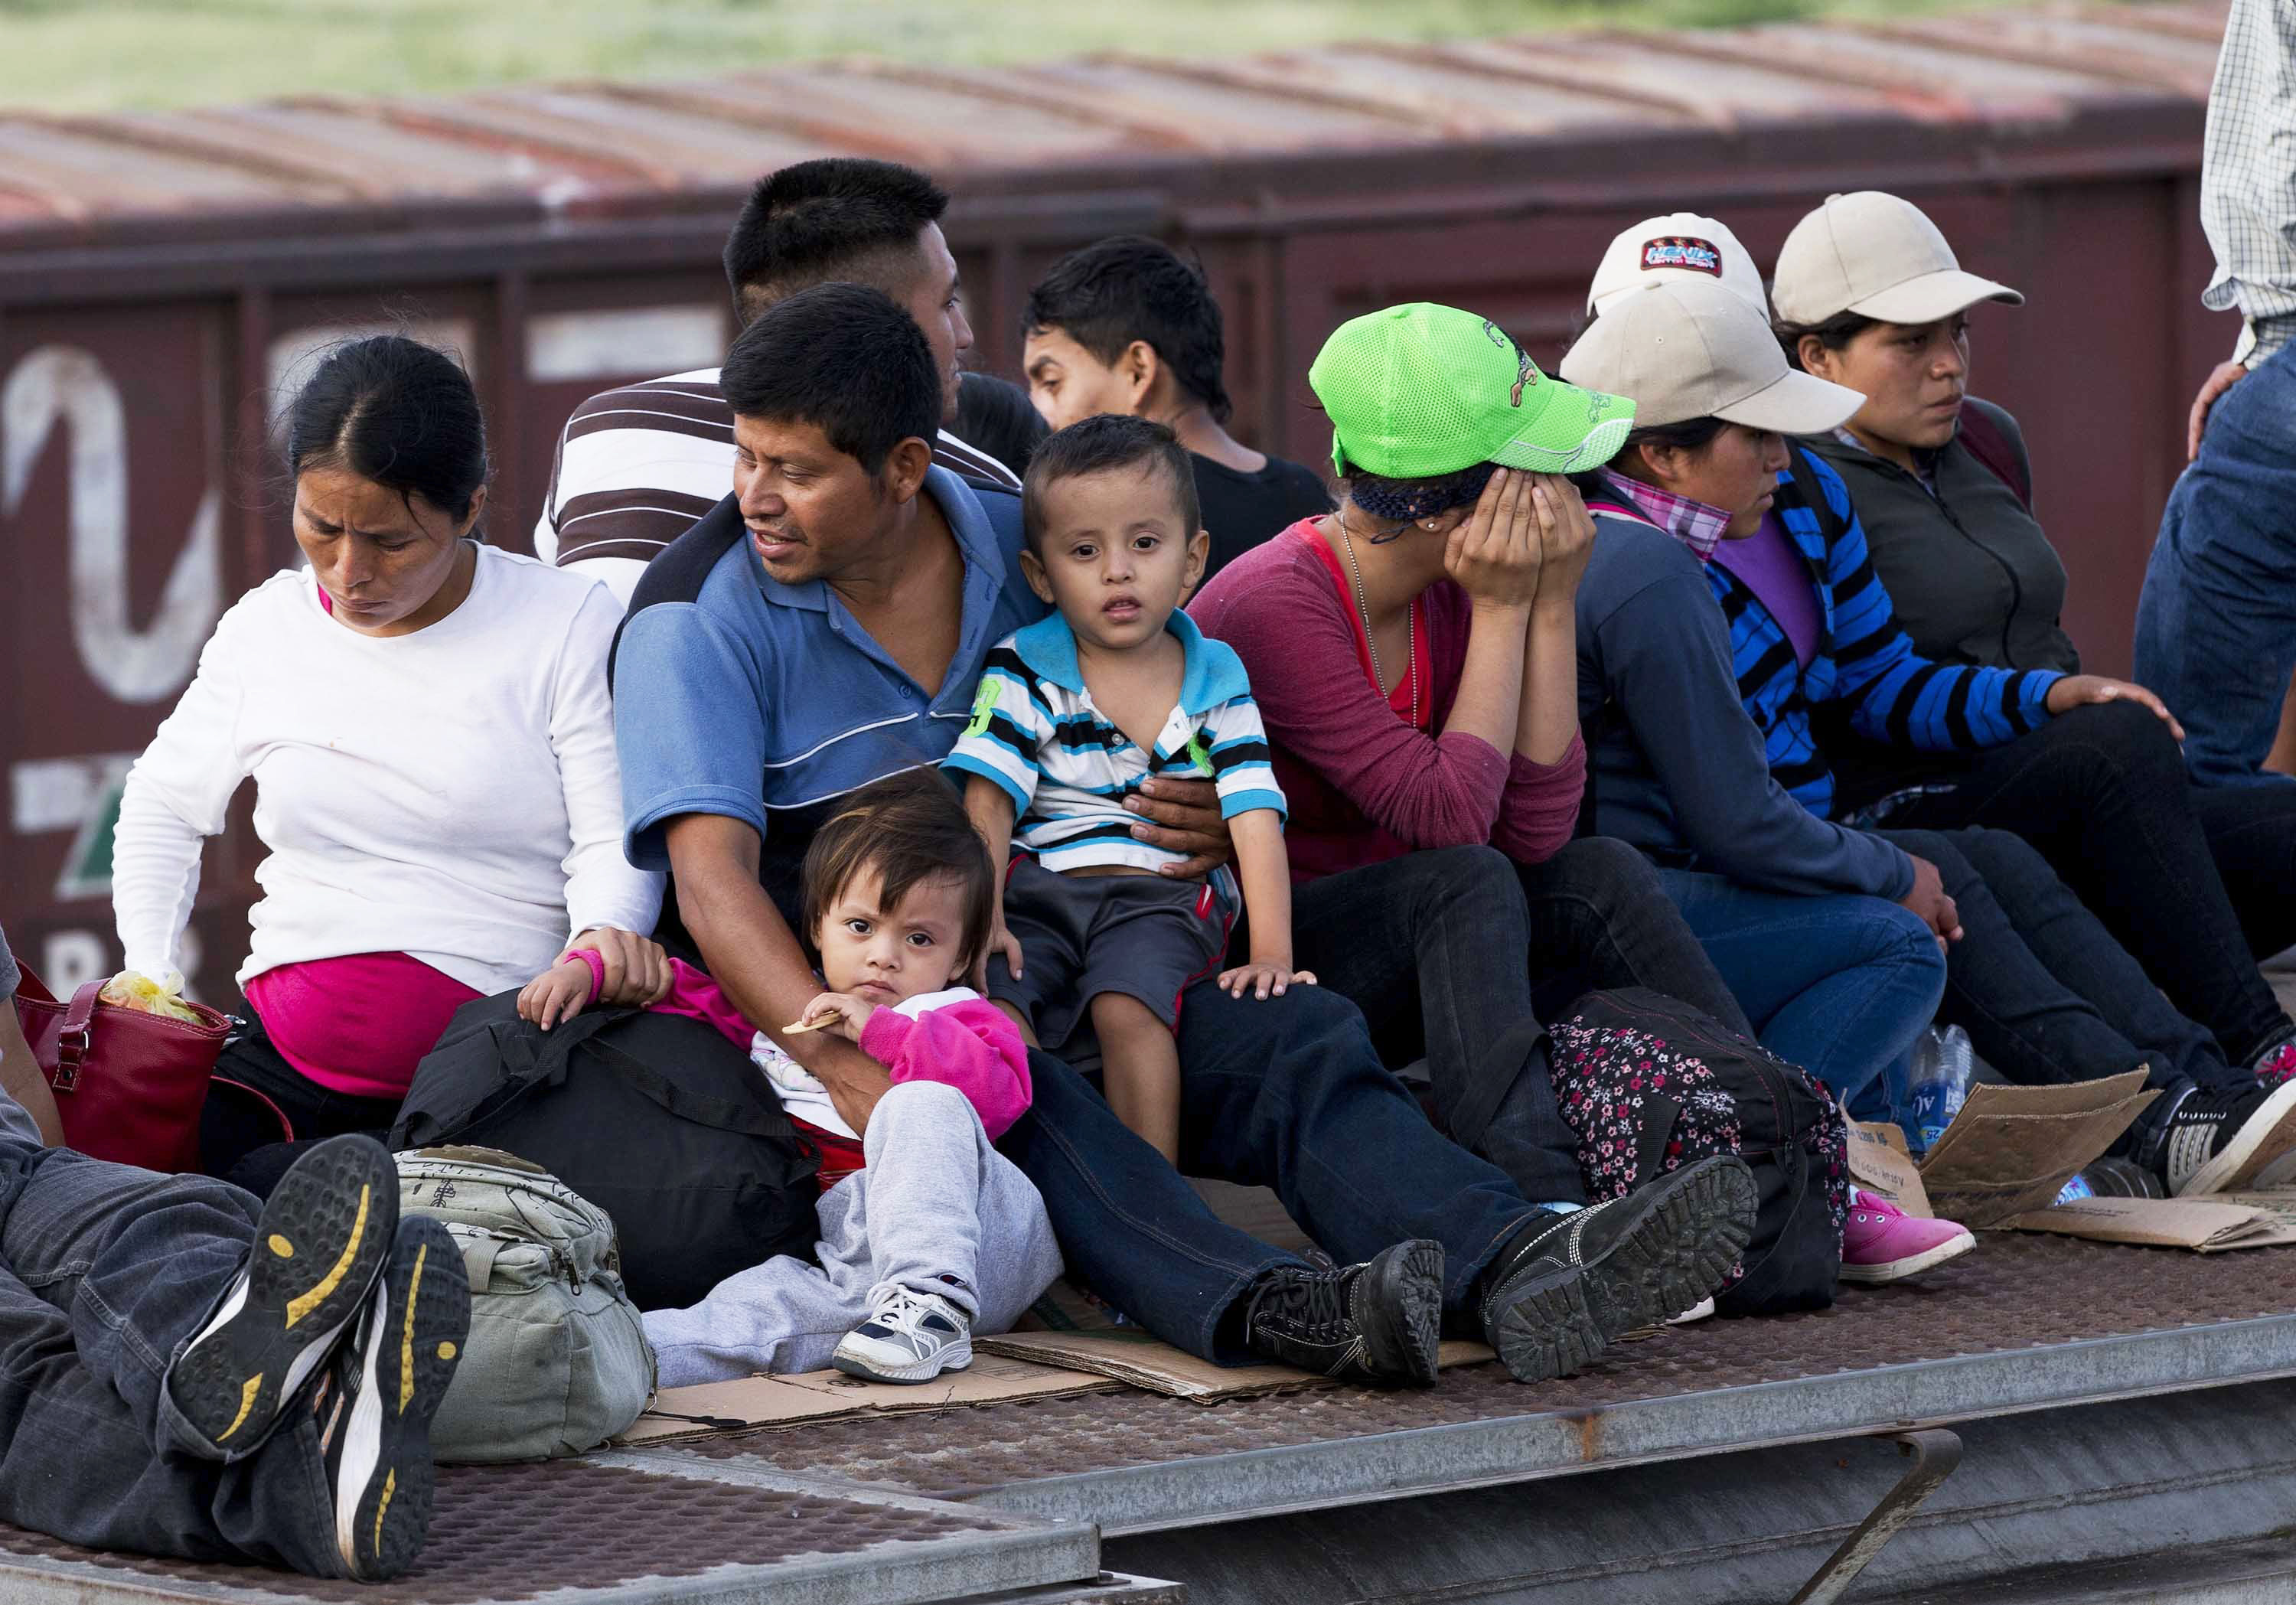 Central American migrants ride a freight train during their journey toward the U.S.-Mexico border in Ixtepec, Mexico on July 12, 2014.